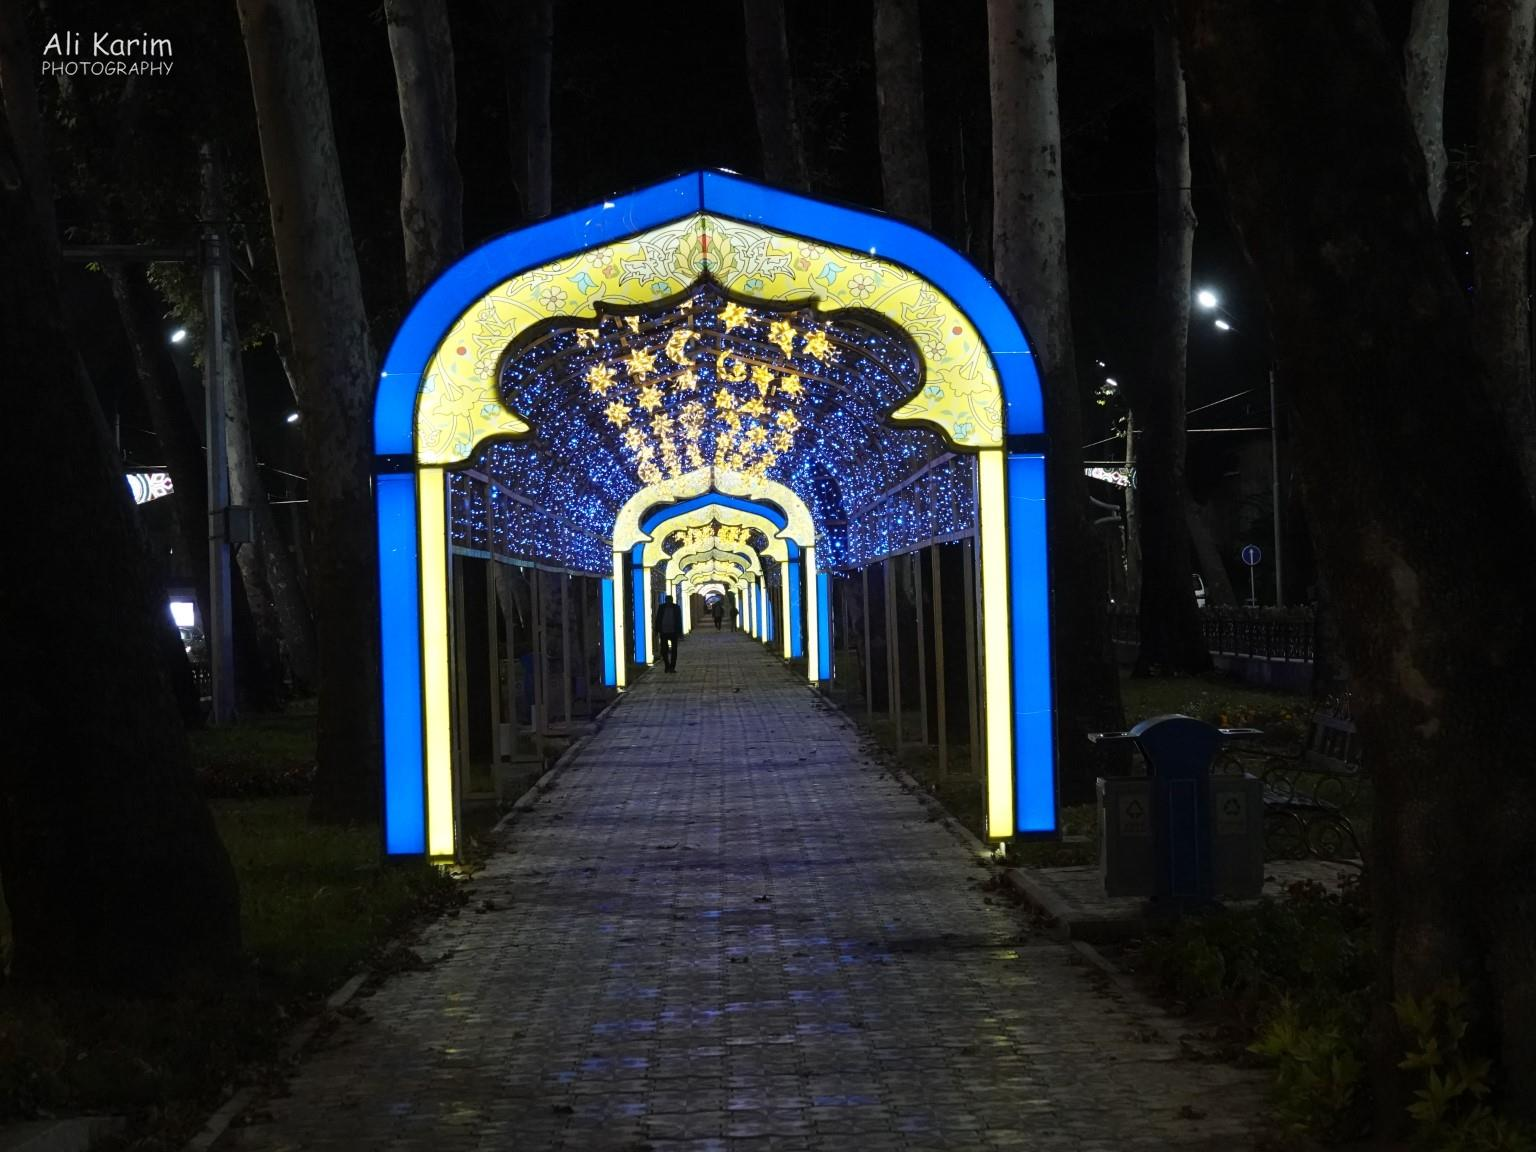 Dushanbe, Tajikistan Another well-lit and unusual pathway in another park